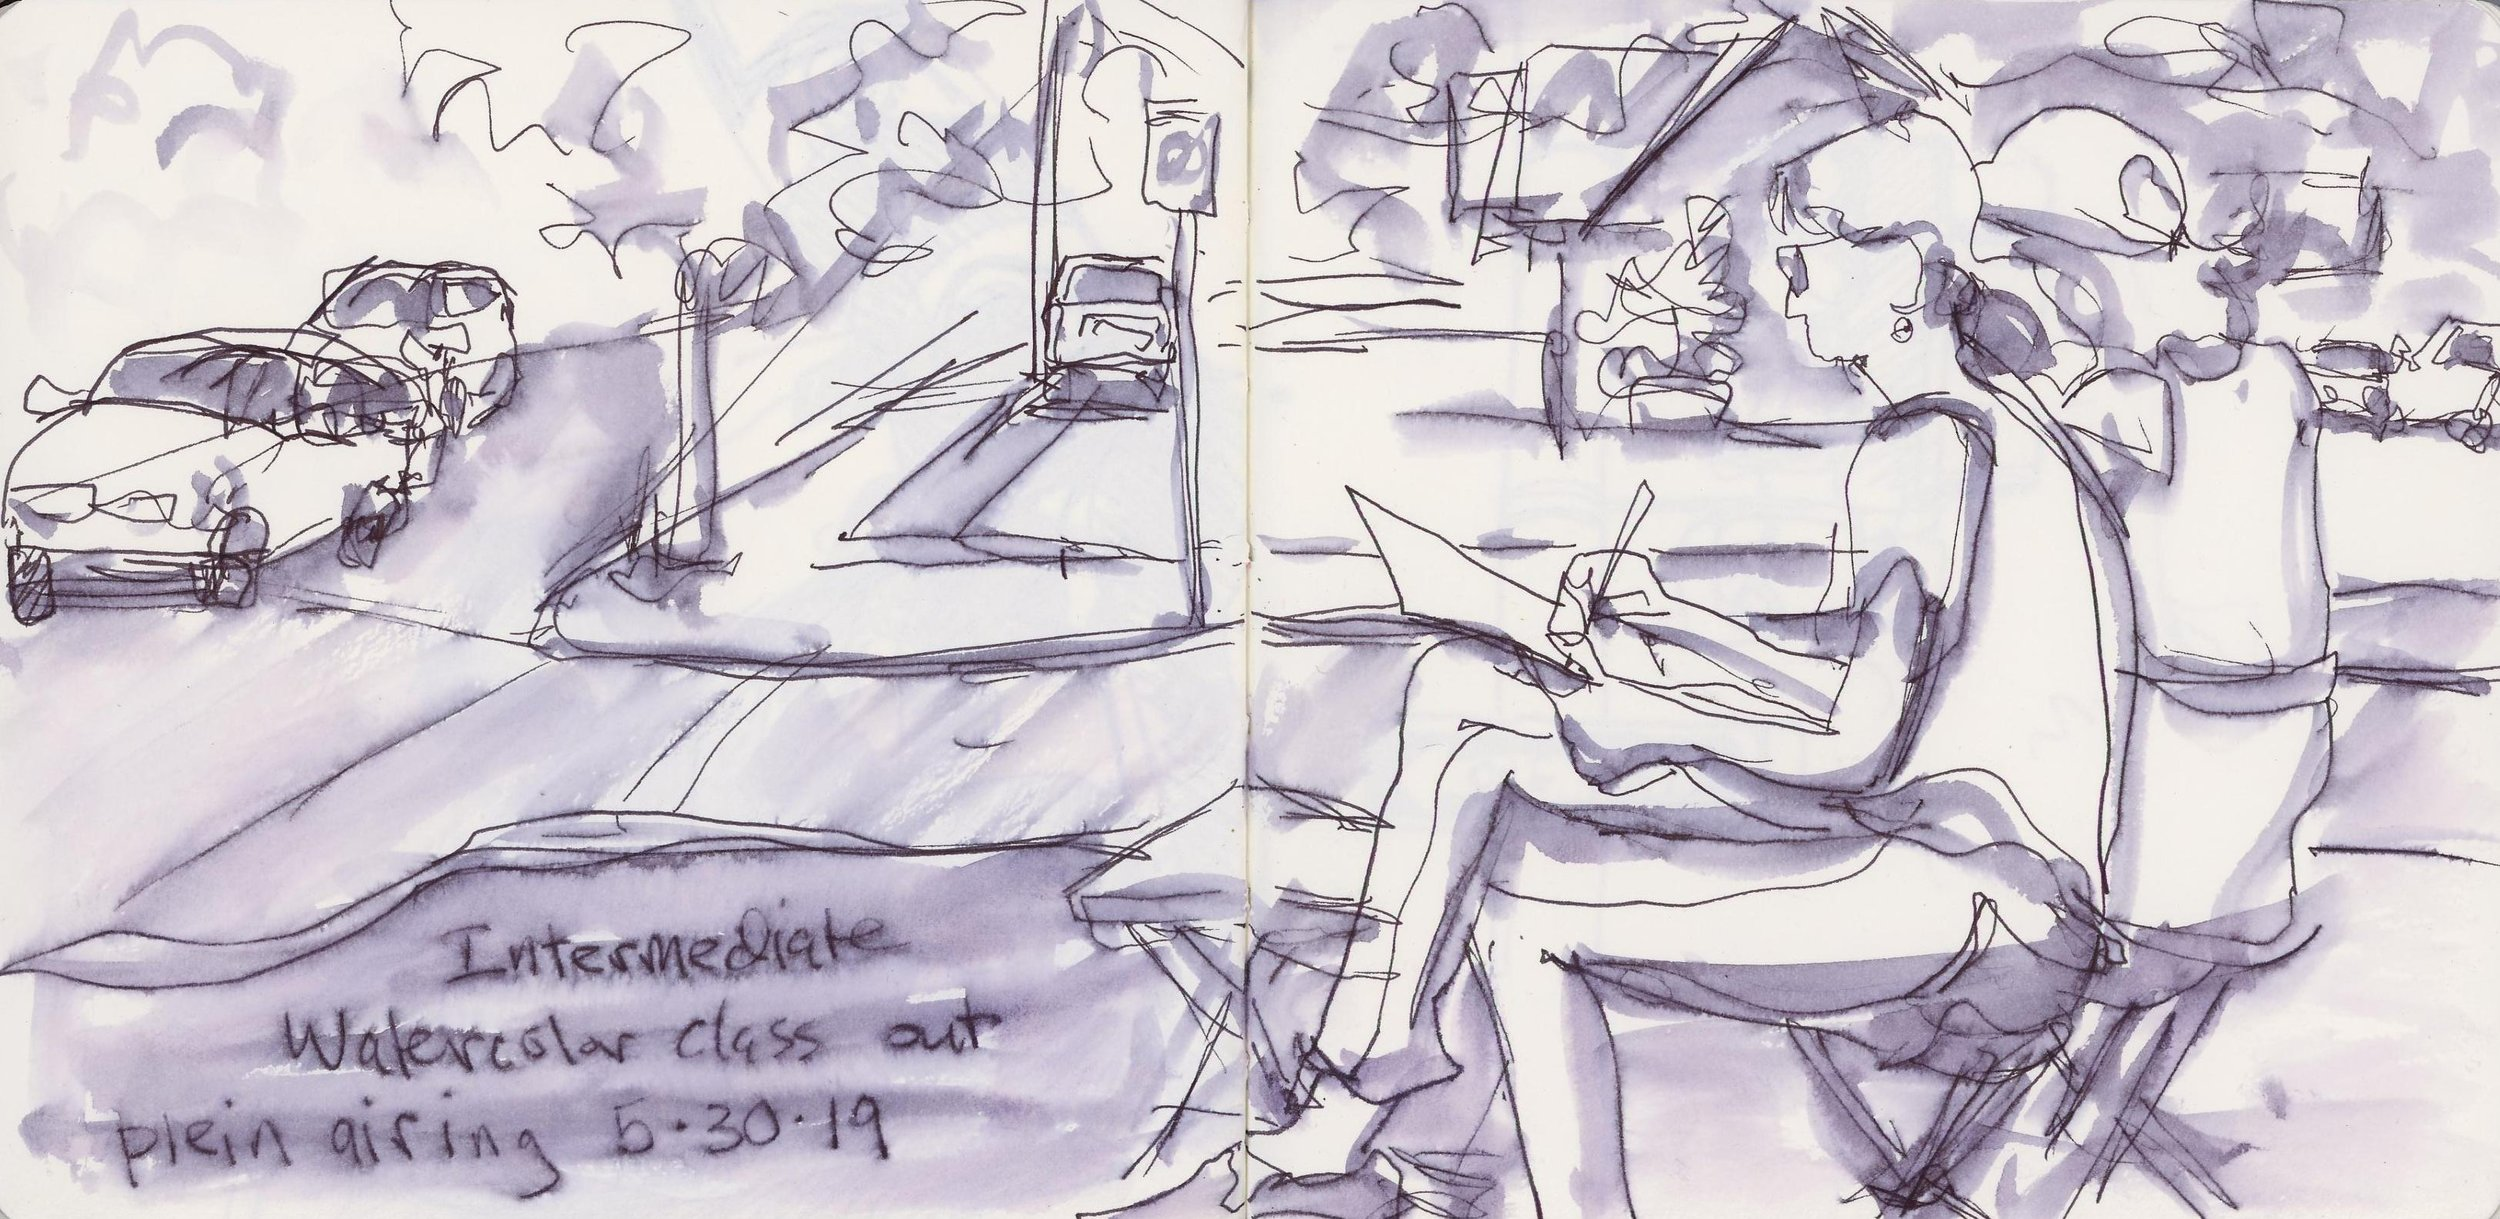 Plenty of Plein Air sketching with my Garland Sketchcrawl classes at the Spokane Art School.